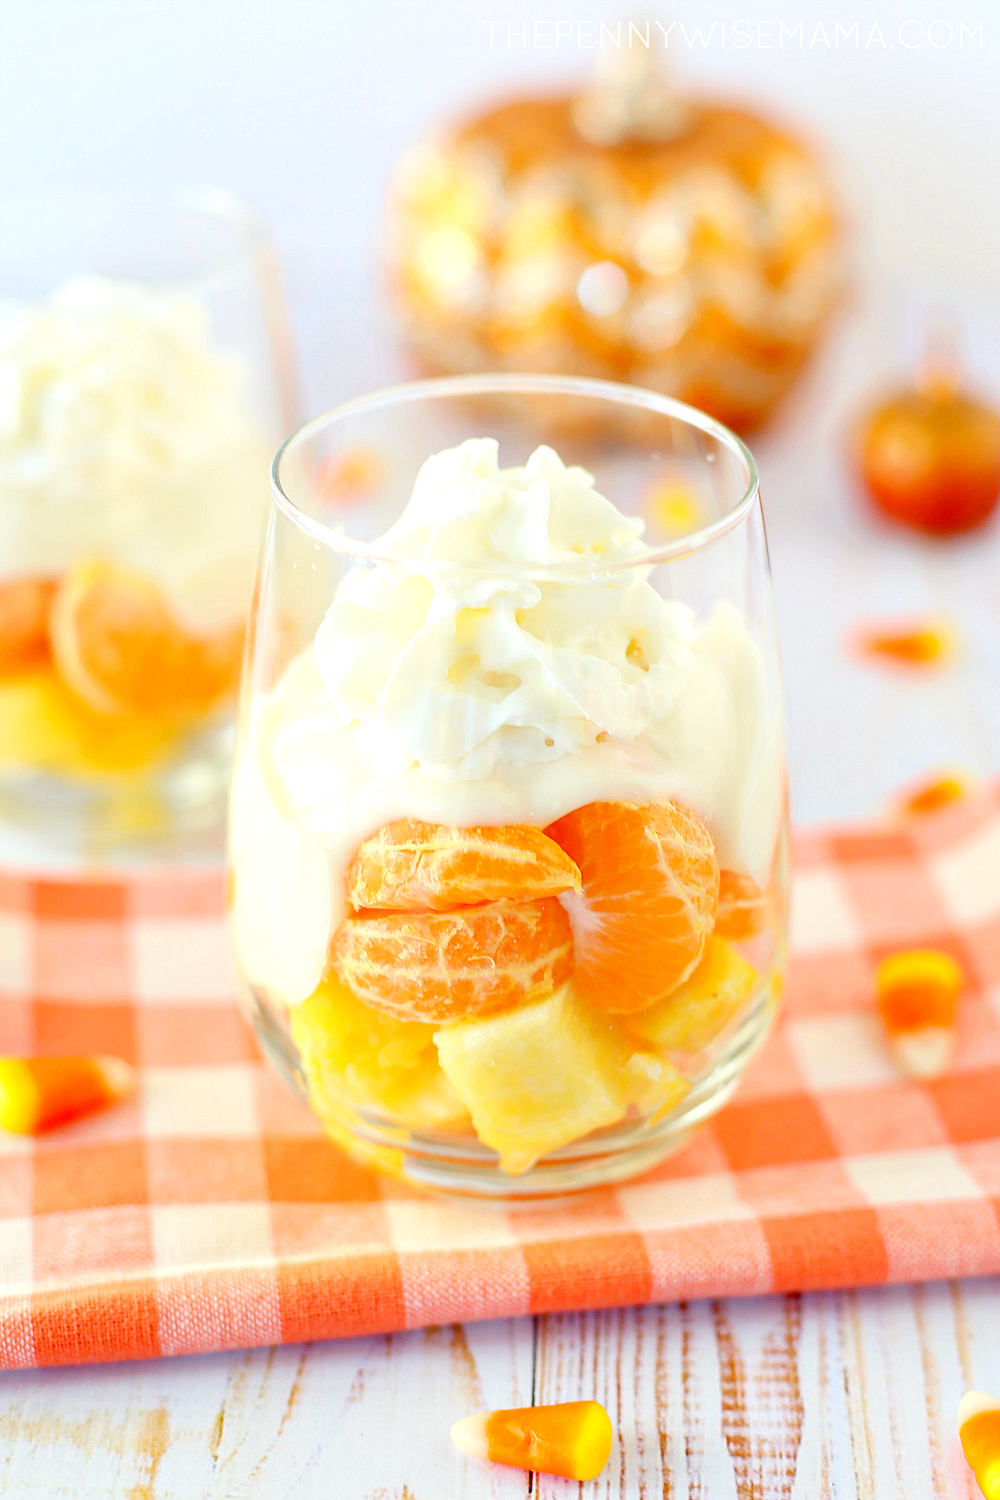 Healthy 'Candy Corn' Fruit Parfaits